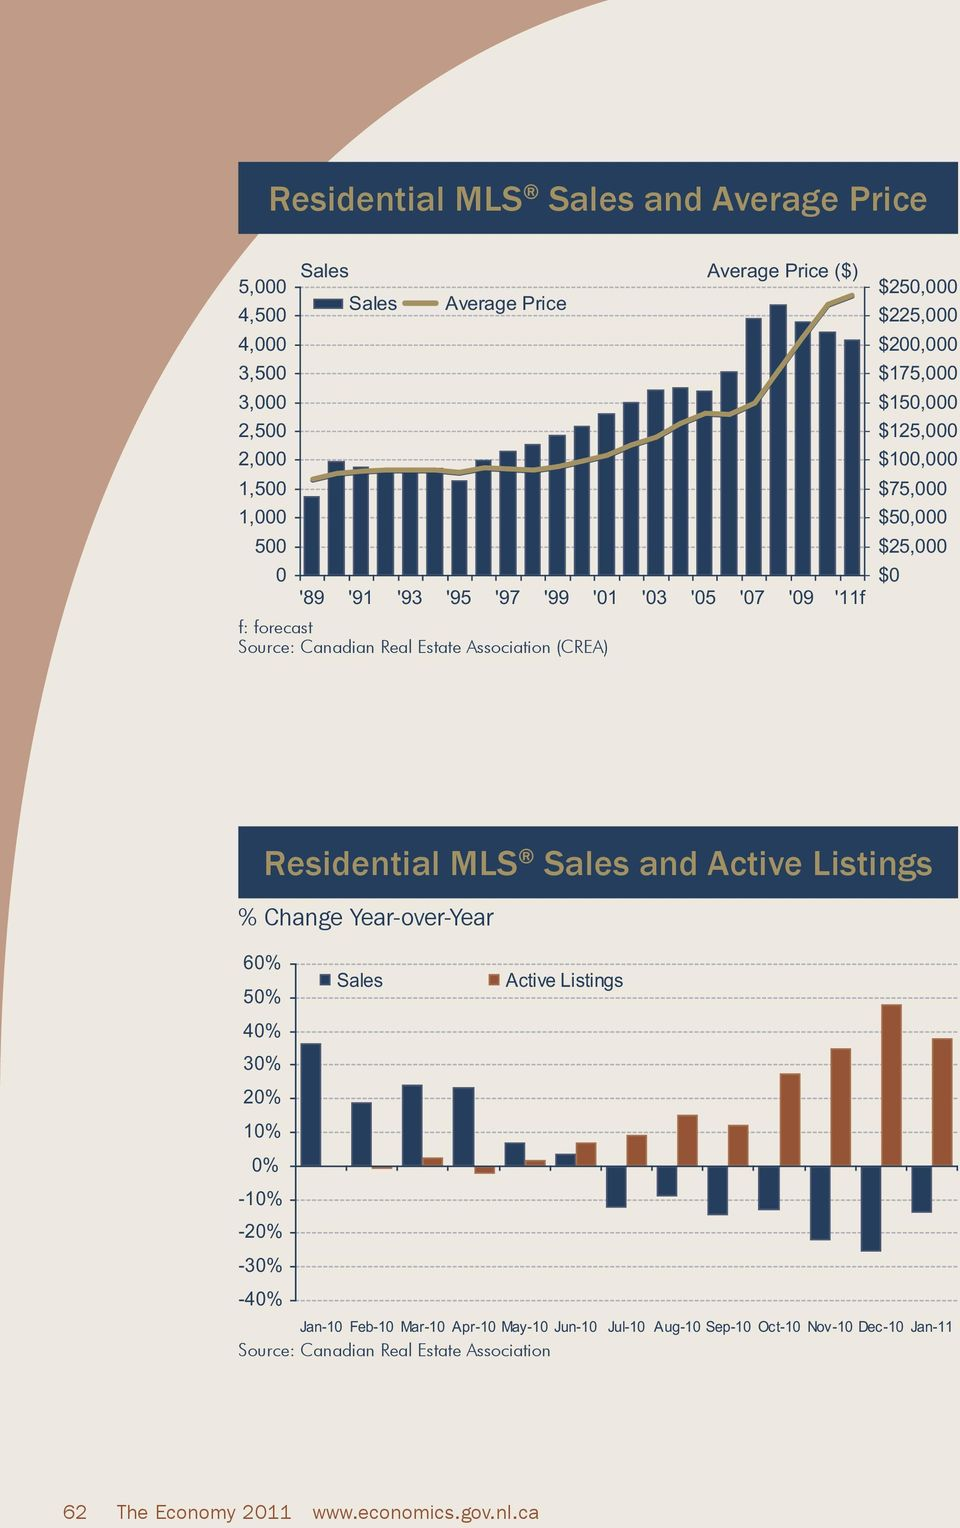 $50,000 $25,000 $0 Residential MLS Sales and Active Listings % Change Year-over-Year 60% 50% 40% 30% 20% 10% 0% -10% -20% -30% -40% Sales Active Listings Jan-10